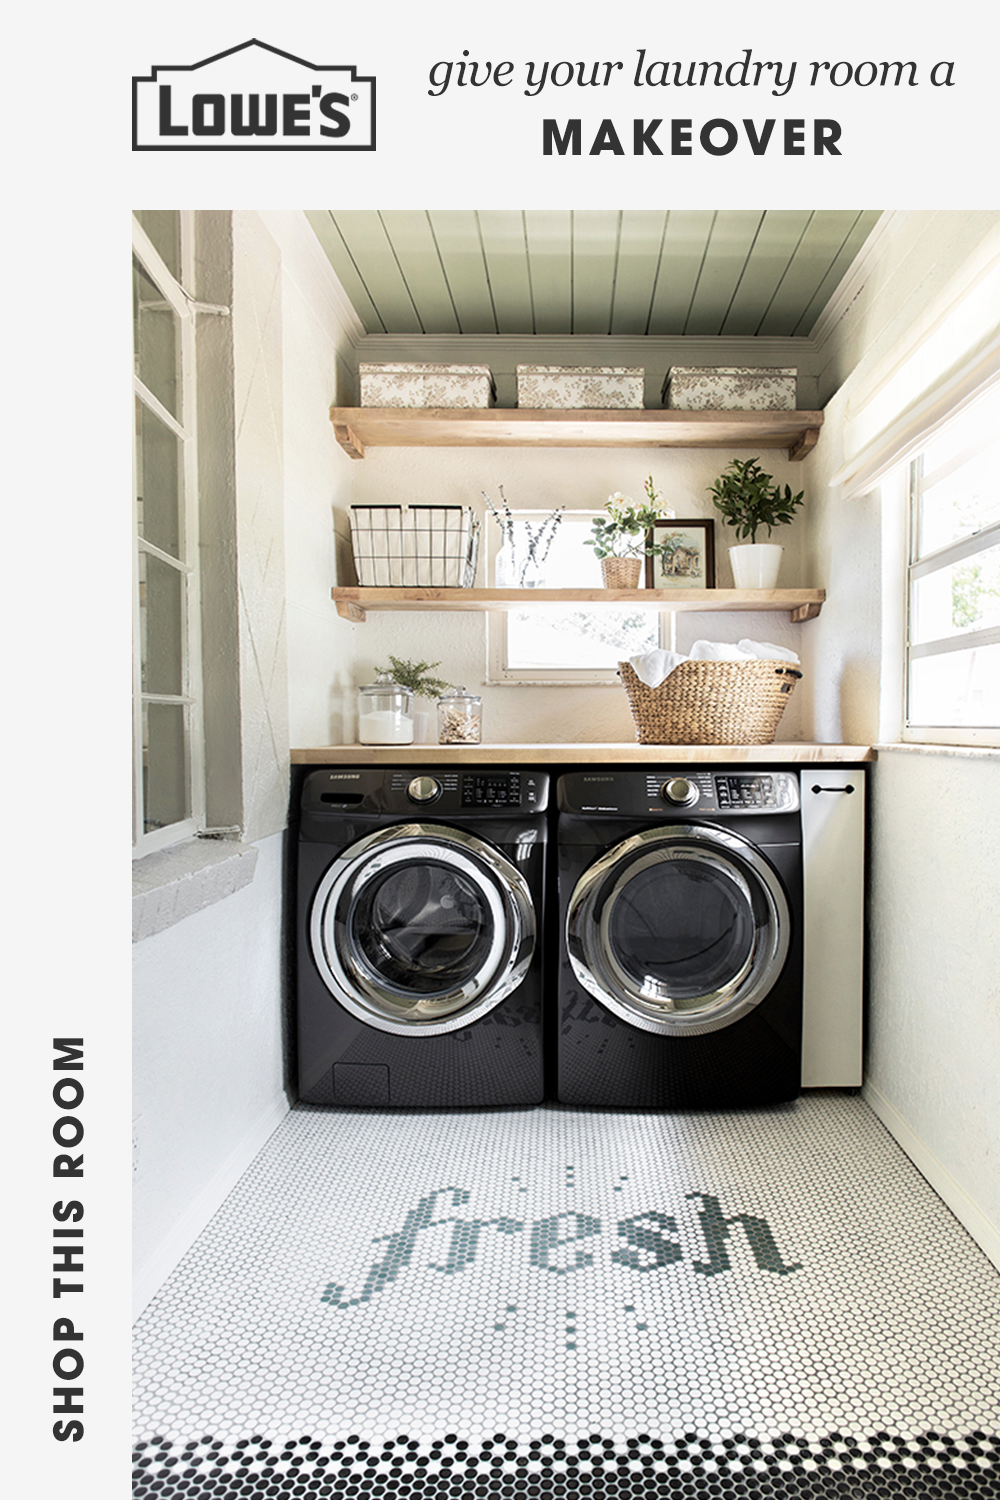 Give Your Laundry Room A Makeover With Stellar Appliances From